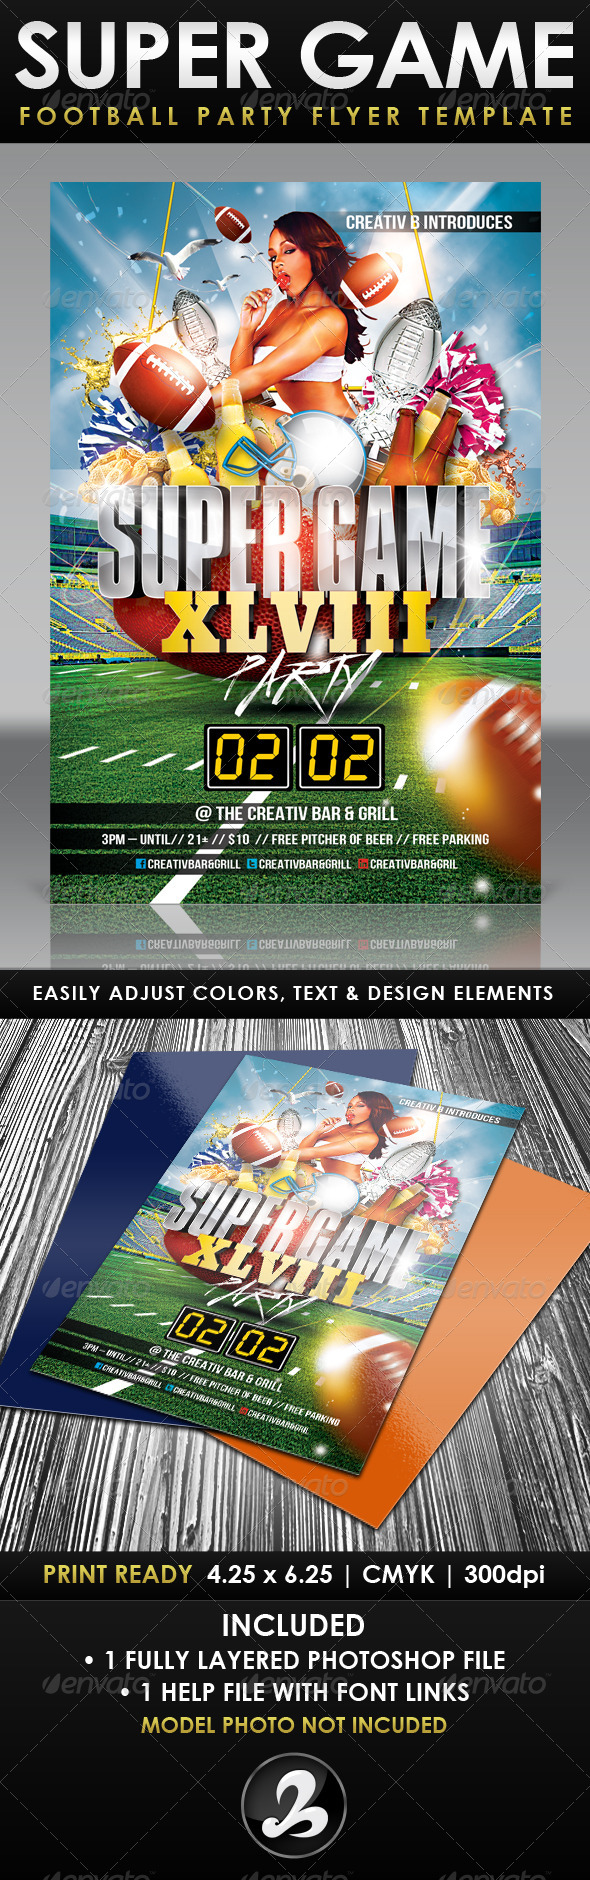 Super Game Football Party Flyer Template - UPDATED - Sports Events